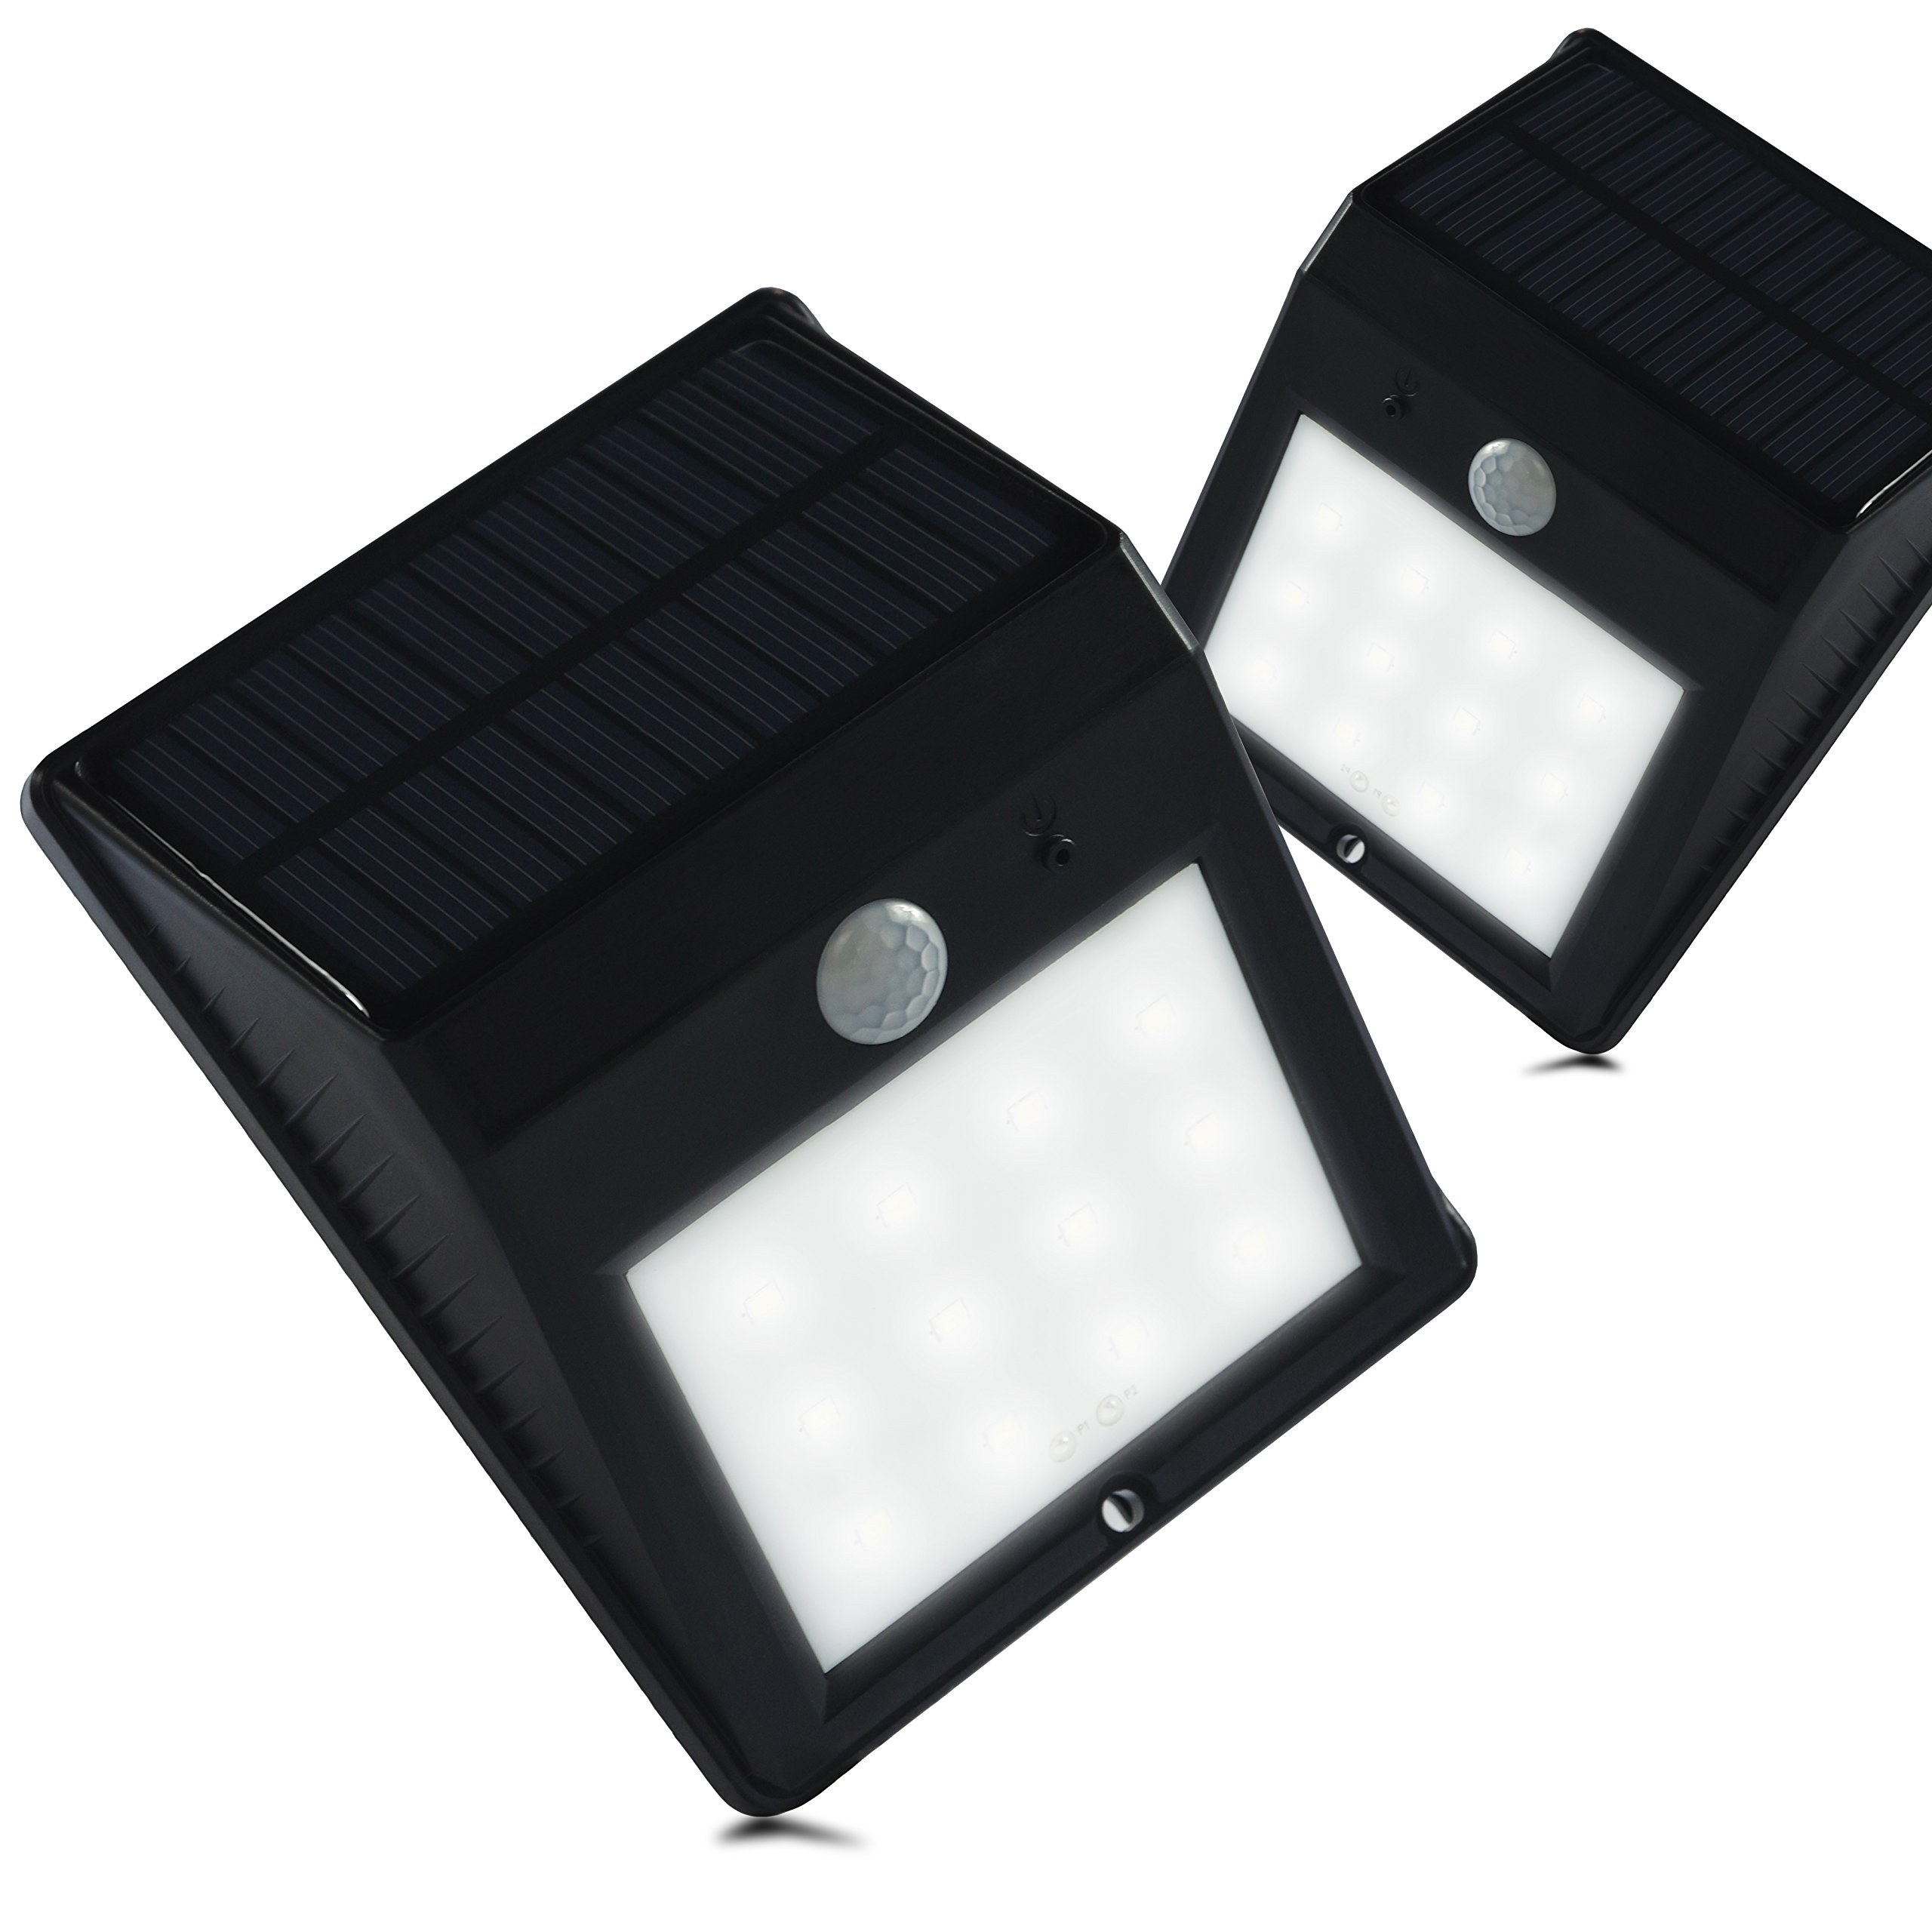 ETOPLIGHTING [2-Pack] Outdoor LED Wall Security Light with PIR Motion Sensor and Built-In Solar Panel, APL1513